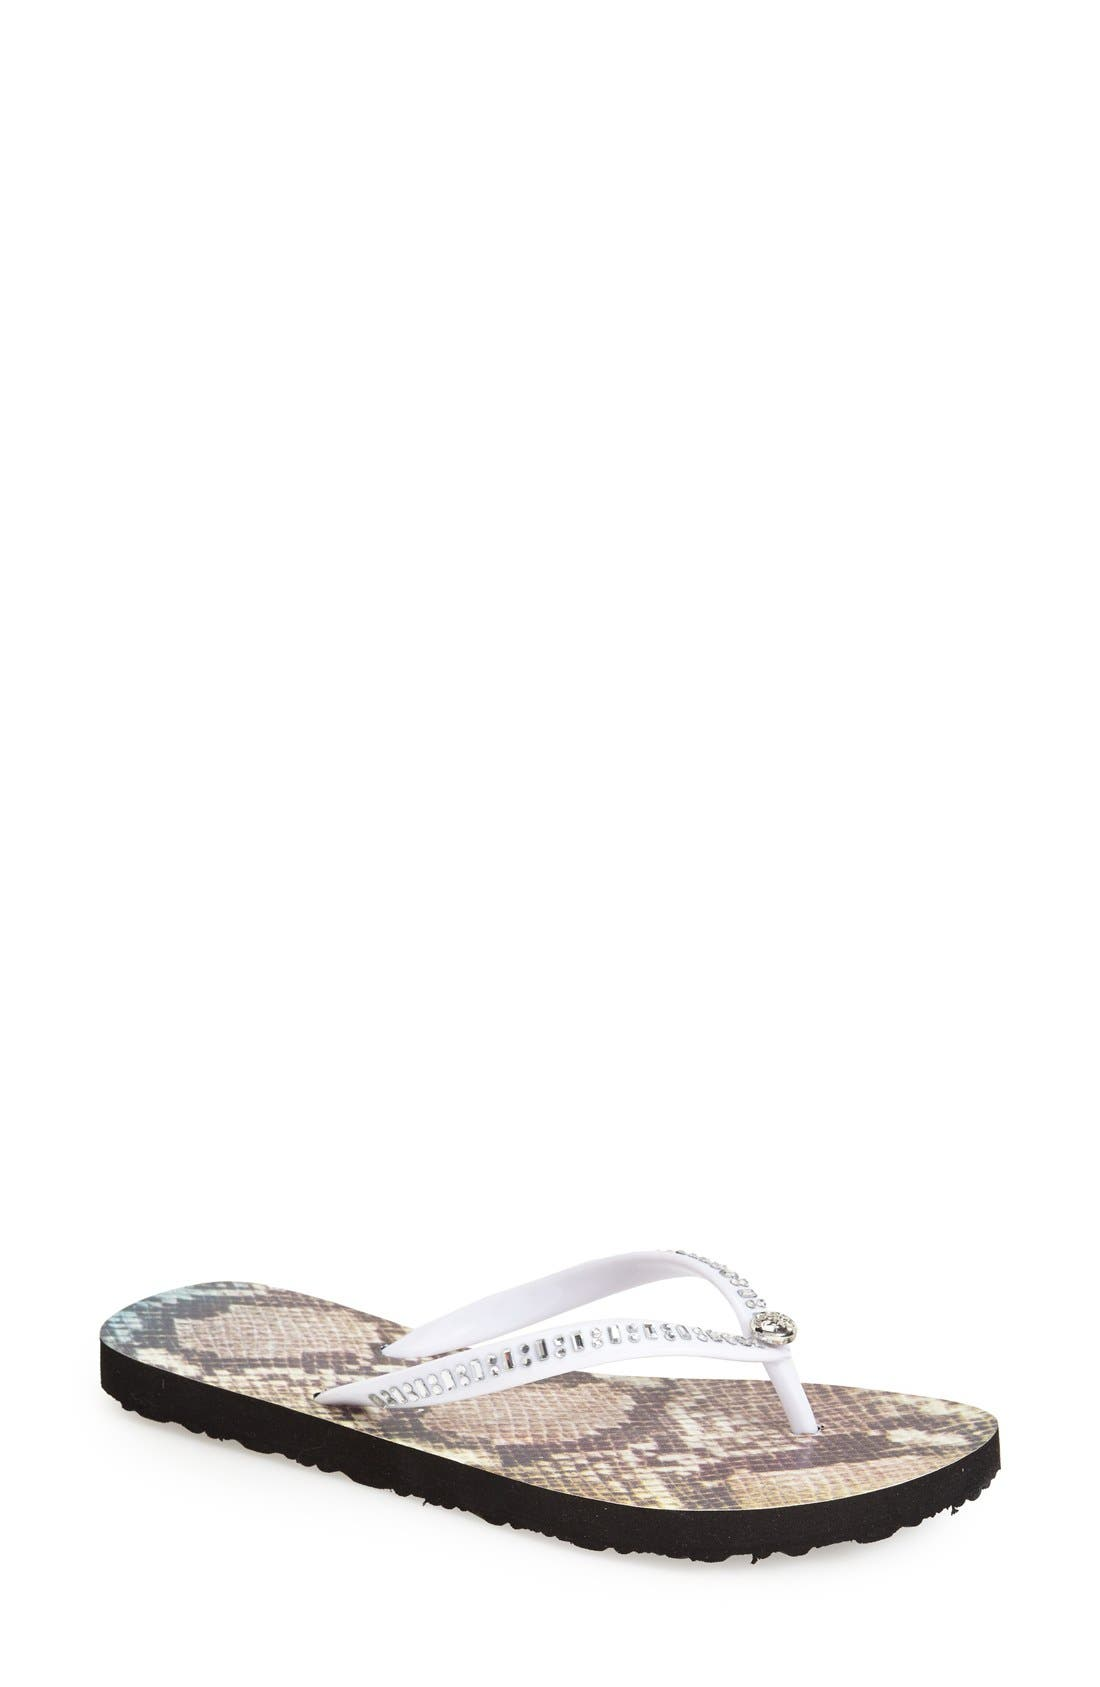 Main Image - GUESS 'Paiva' Embellished Flip Flop (Women)